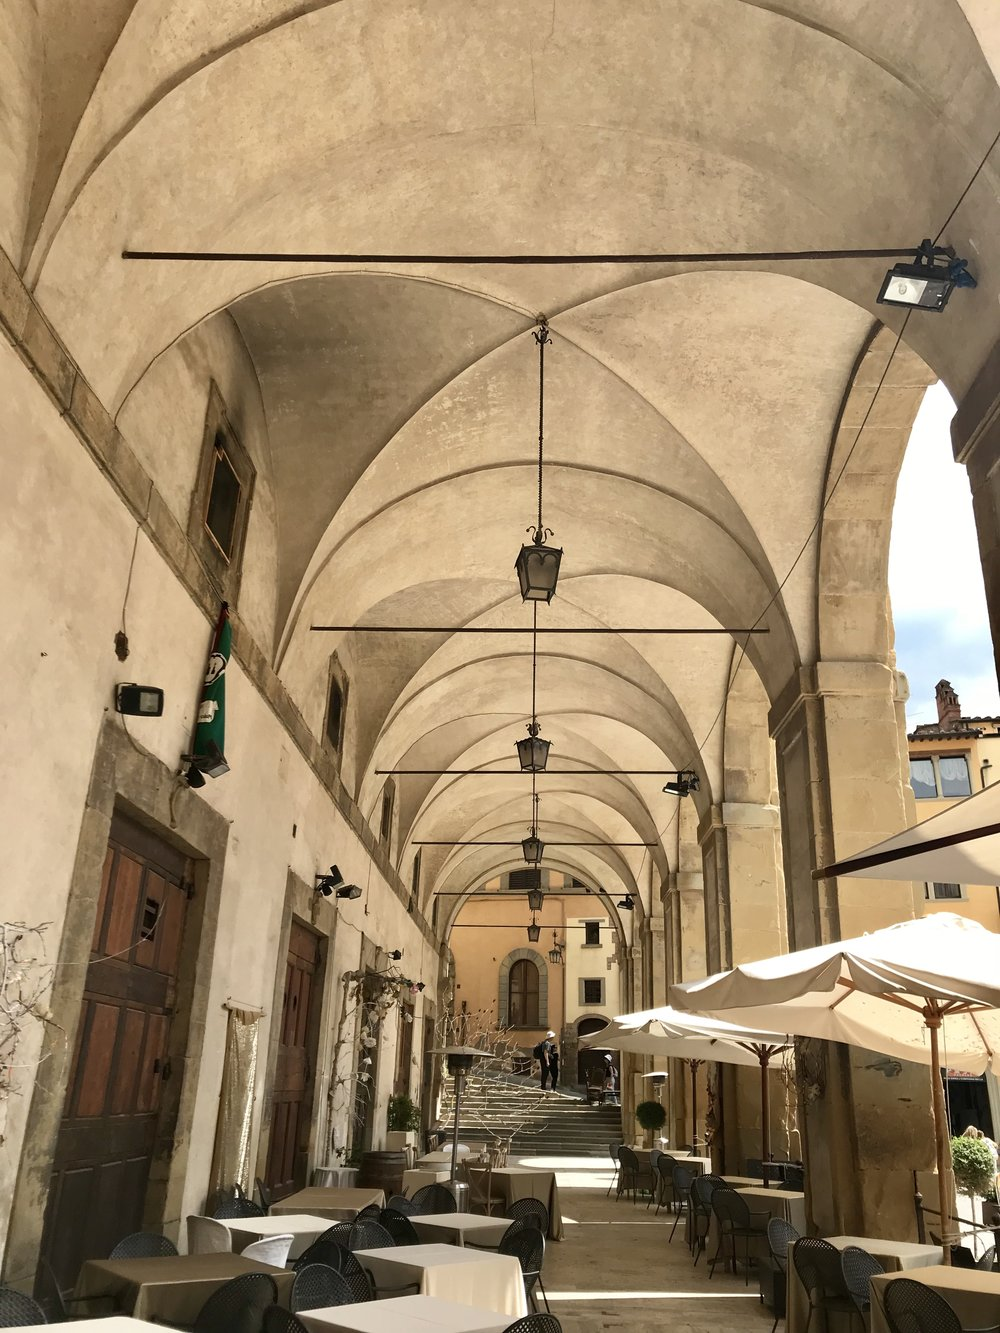 The loggia of the main piazza in Arezzo was designed by Vasari.